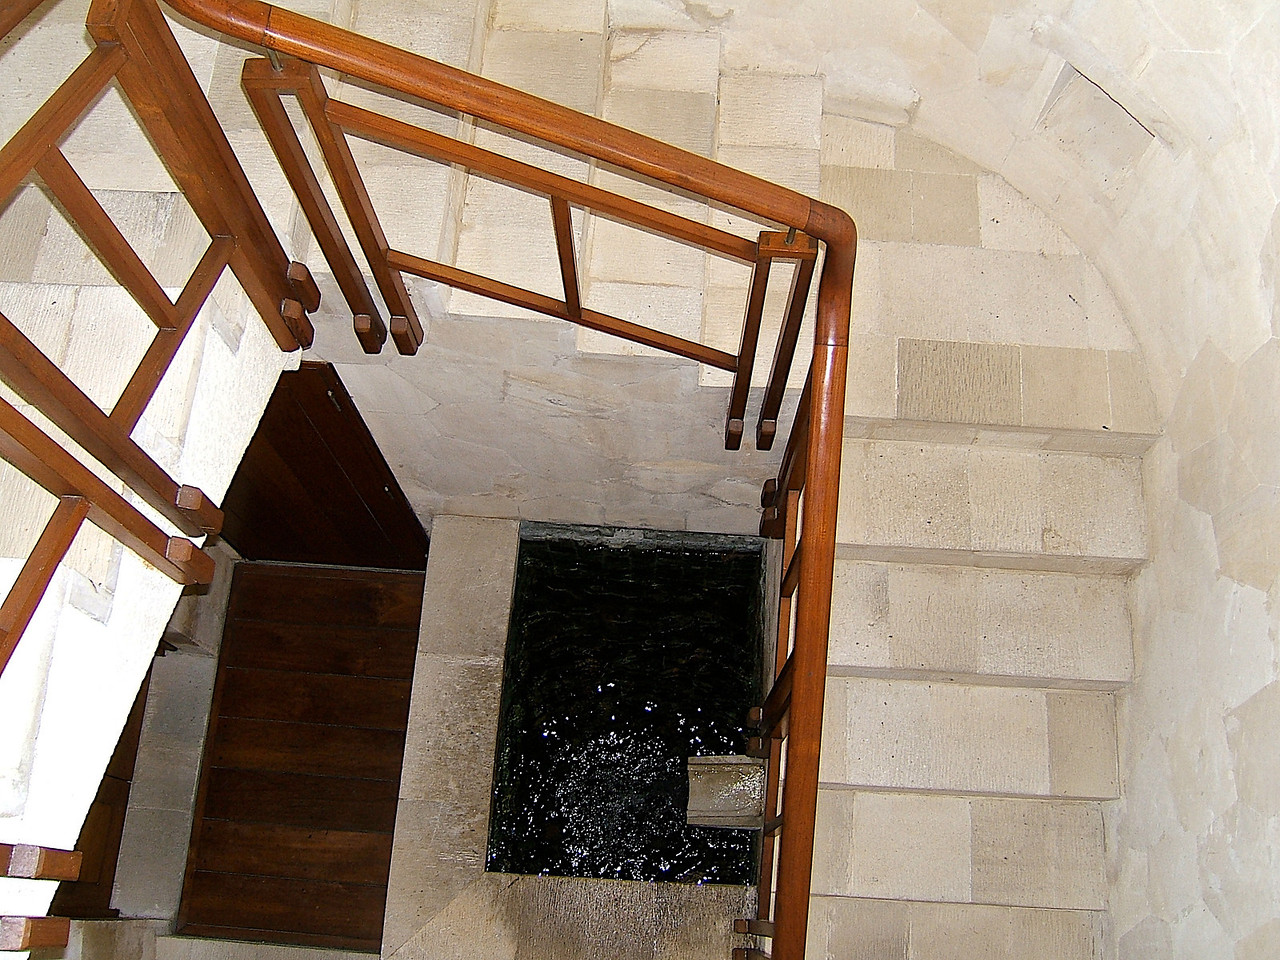 The stairway from the top of the lily pond, to the room below with a small fountain outside.